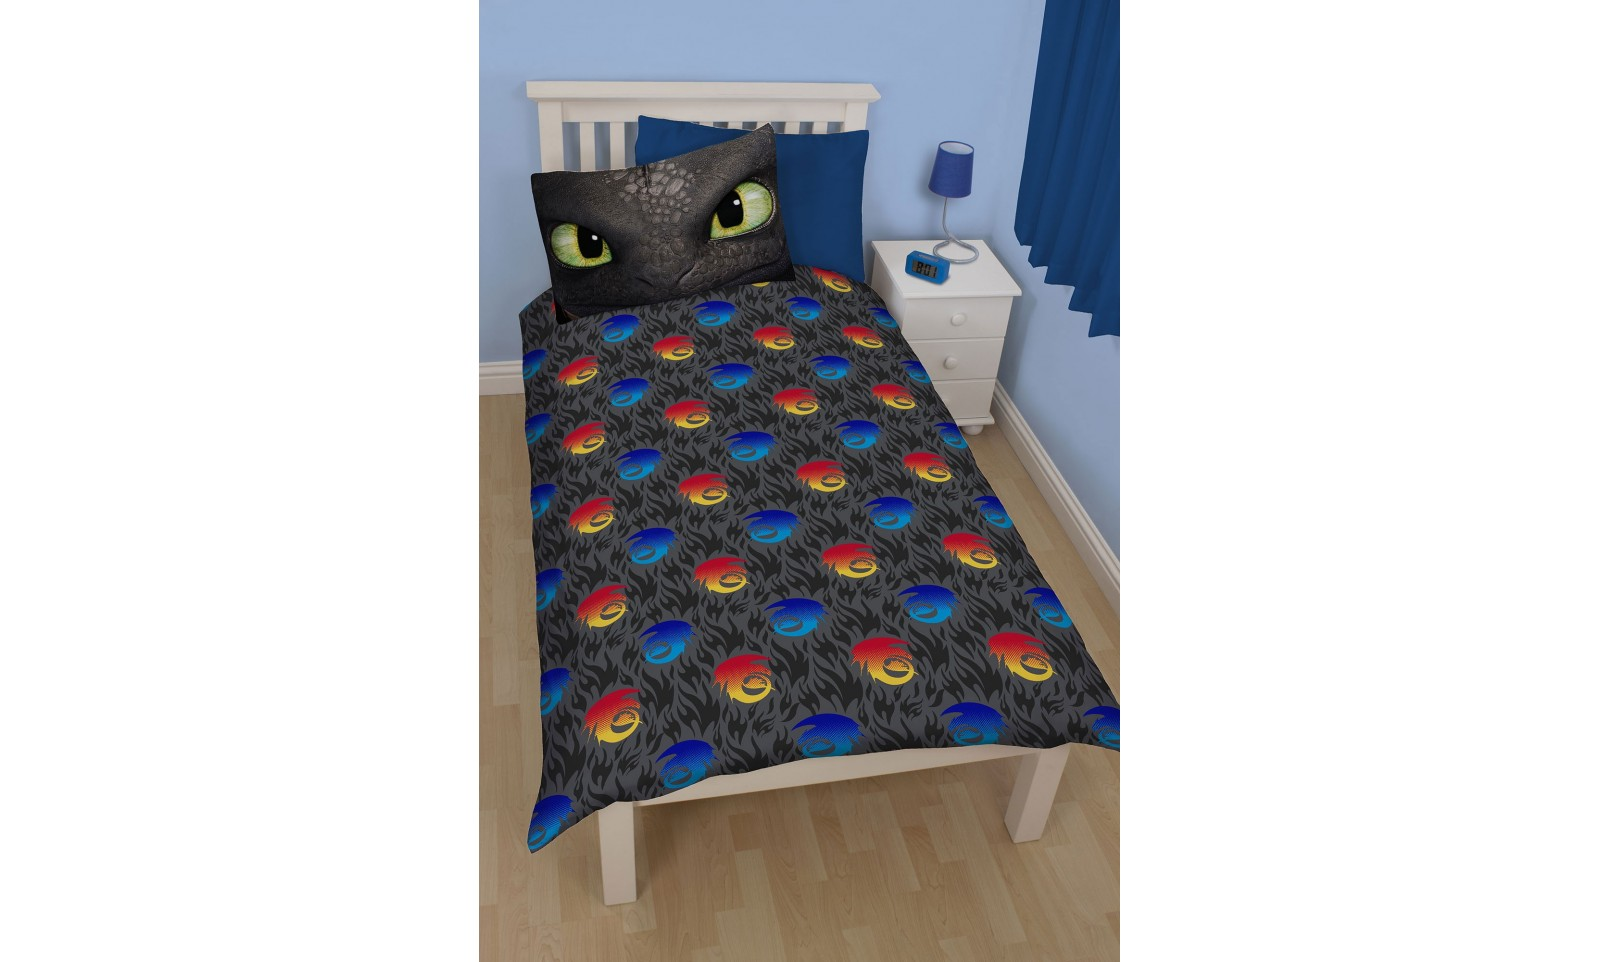 How to train your dragon toothless reversible duvet set pillow how to train your dragon toothless reversible duvet set pillow case duvet cover ccuart